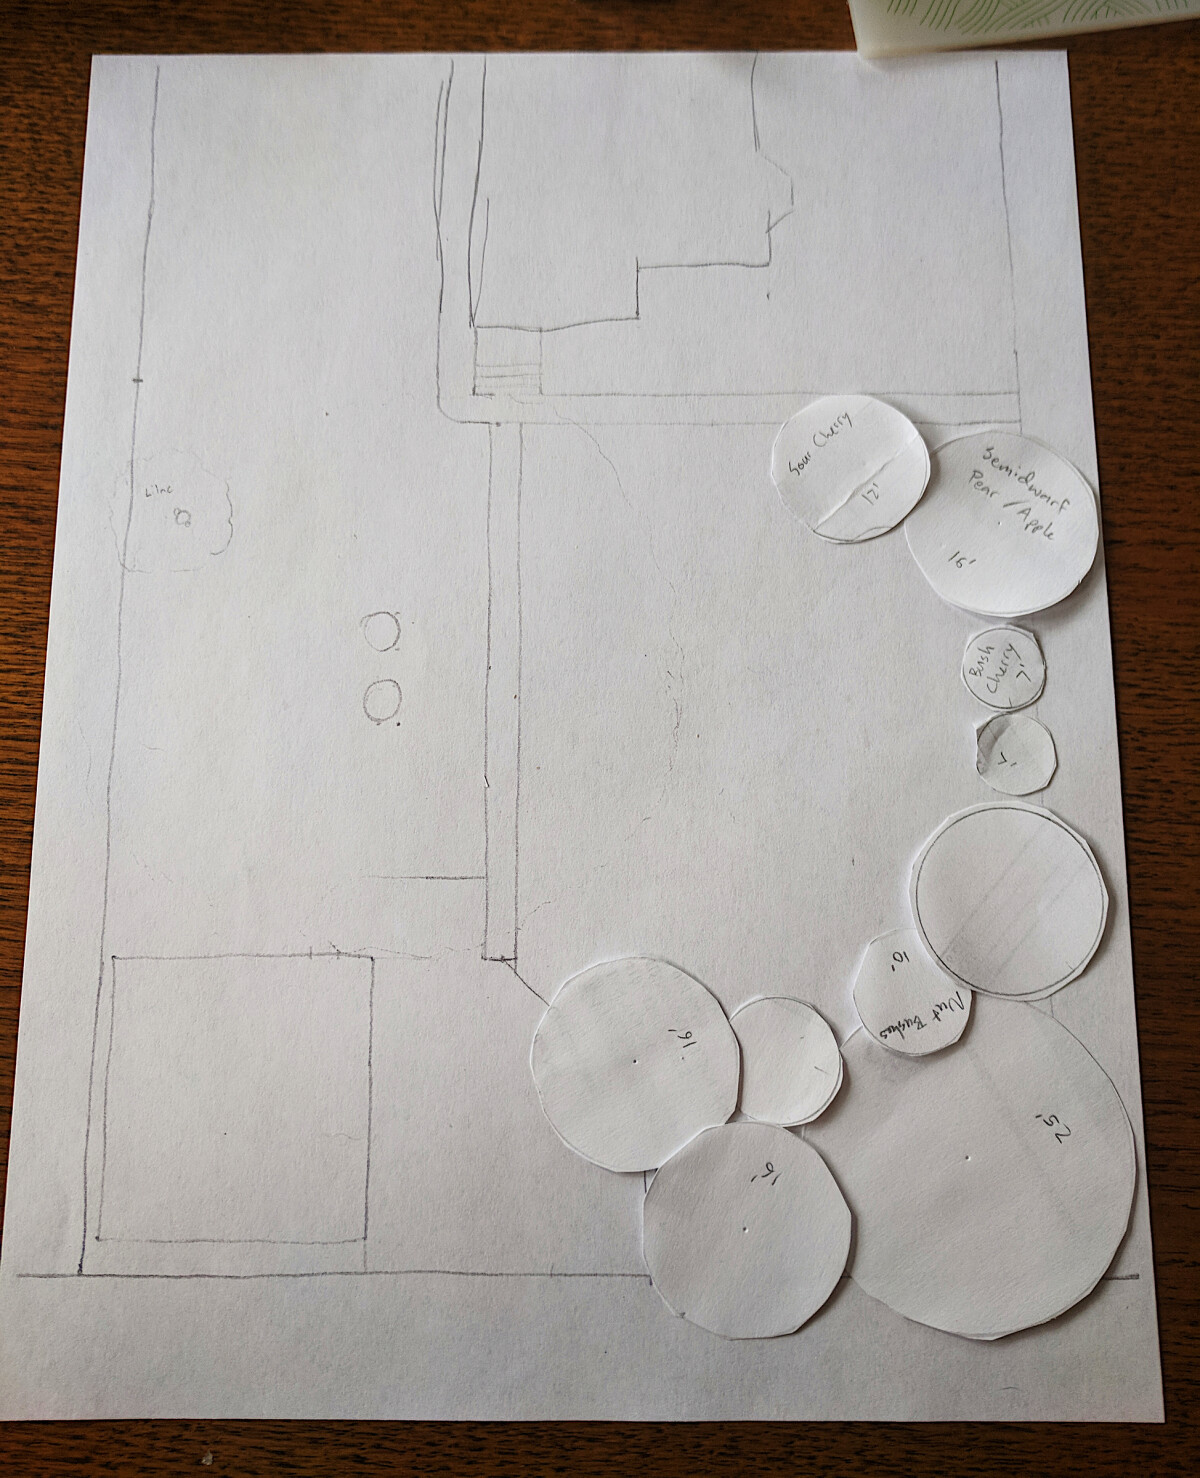 Map of the back area of the lot with loose circles of paper laid out